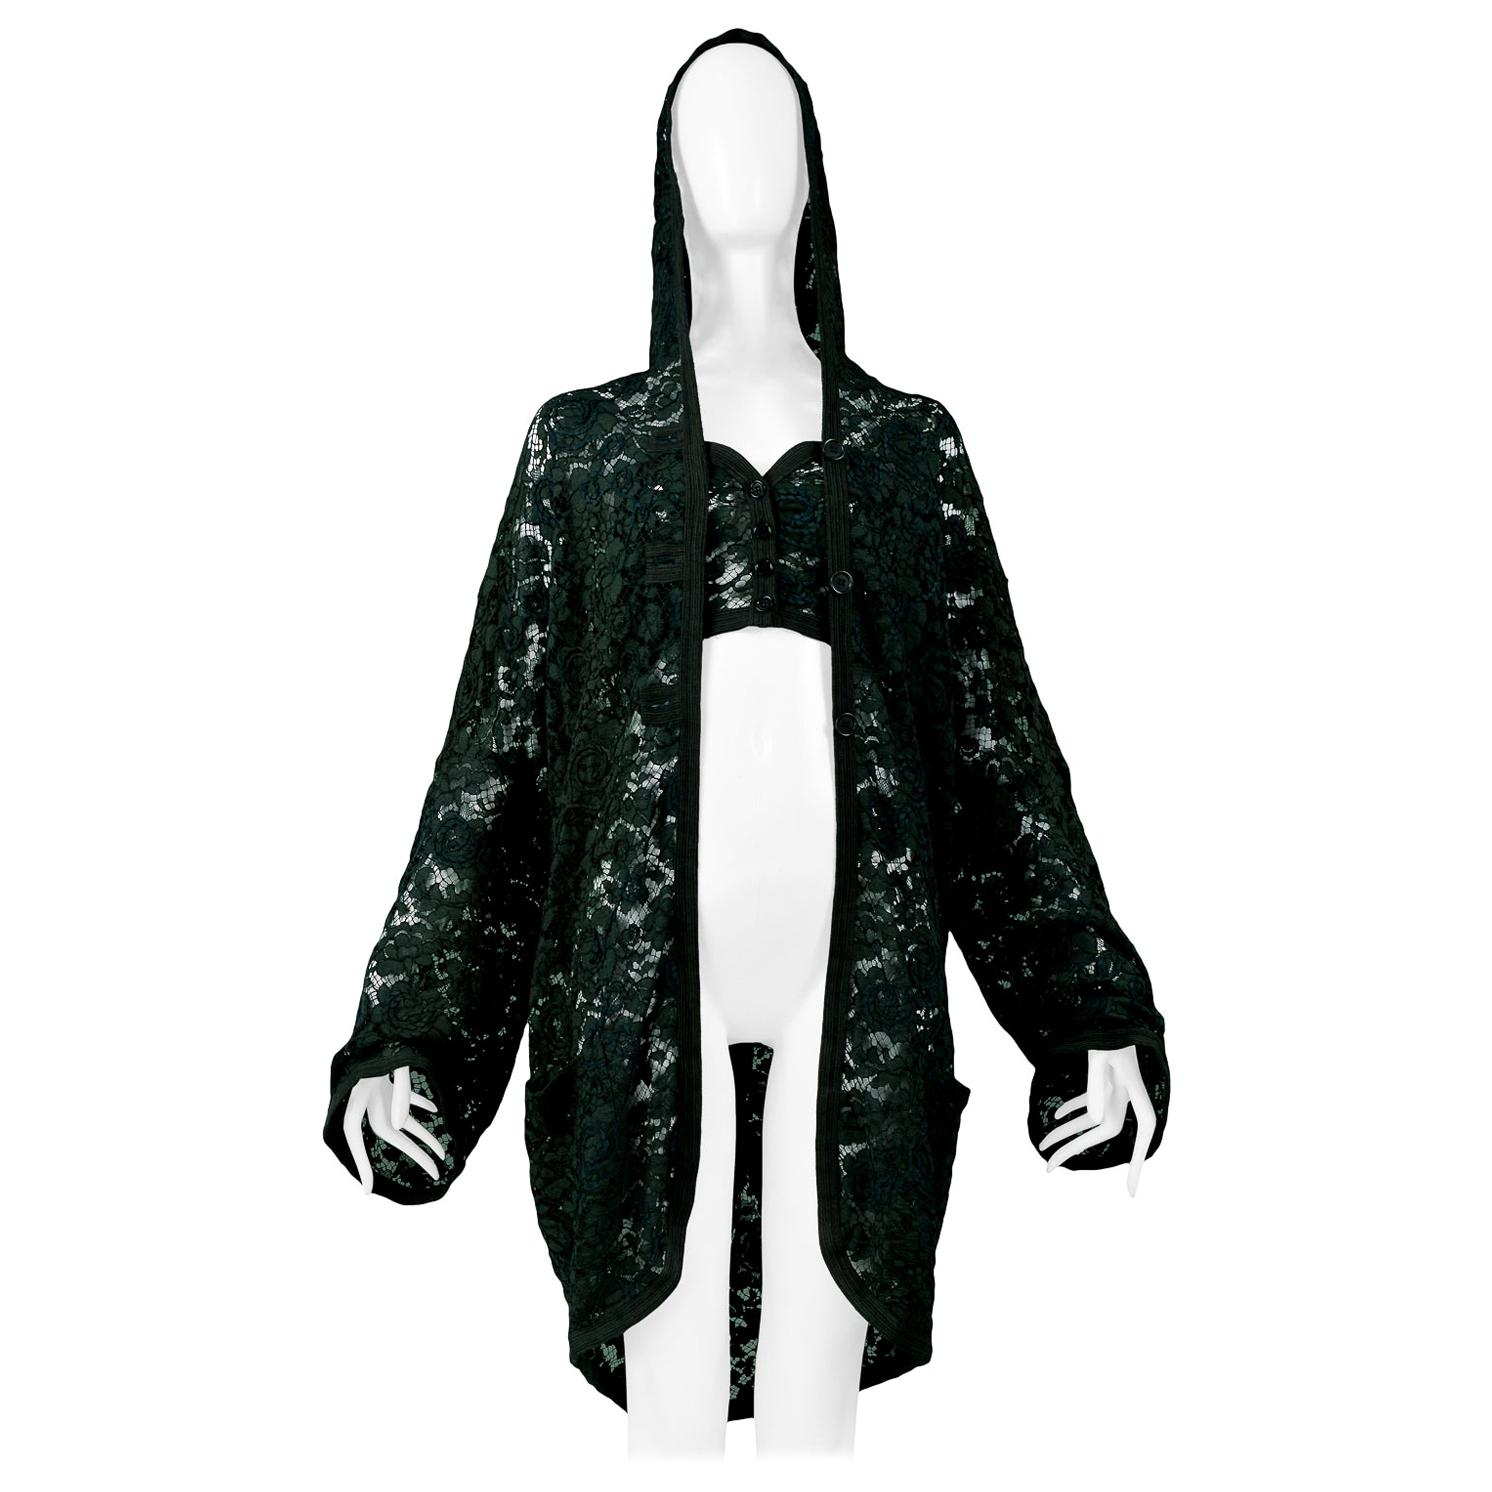 Vintage Romeo Gigli 1990 Green Lace Hooded Jacket